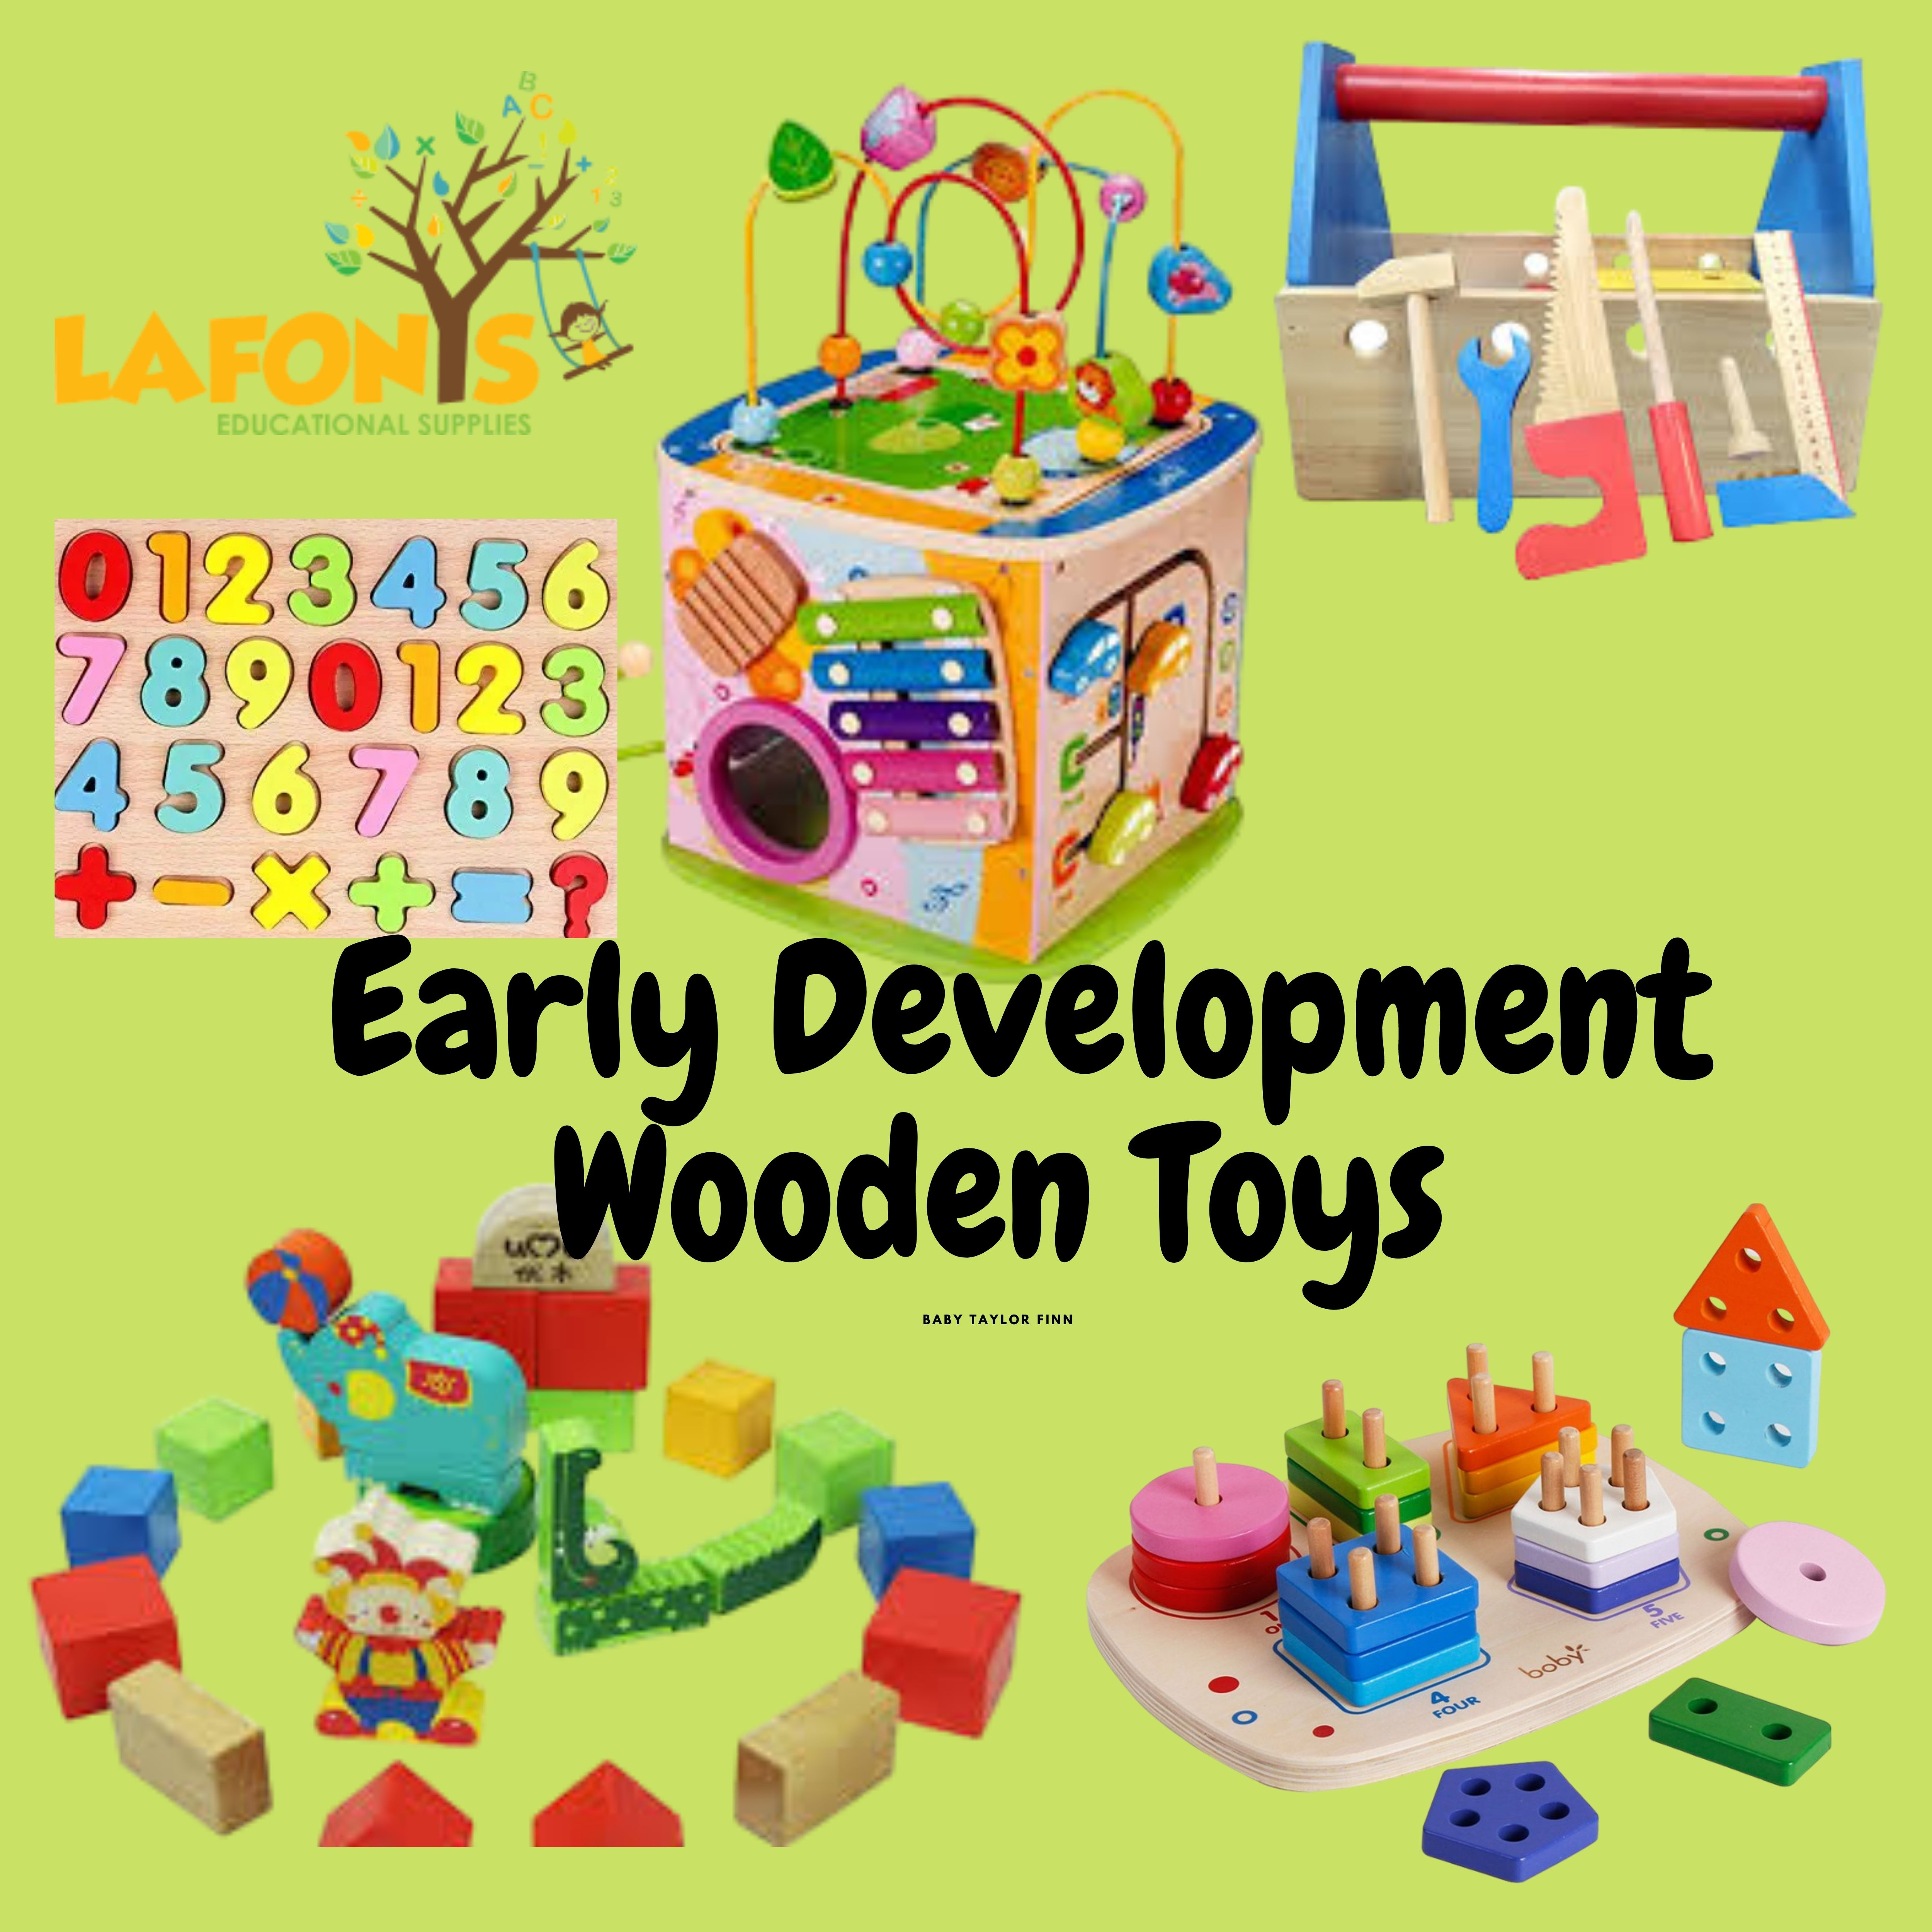 Early Development Wooden Toys